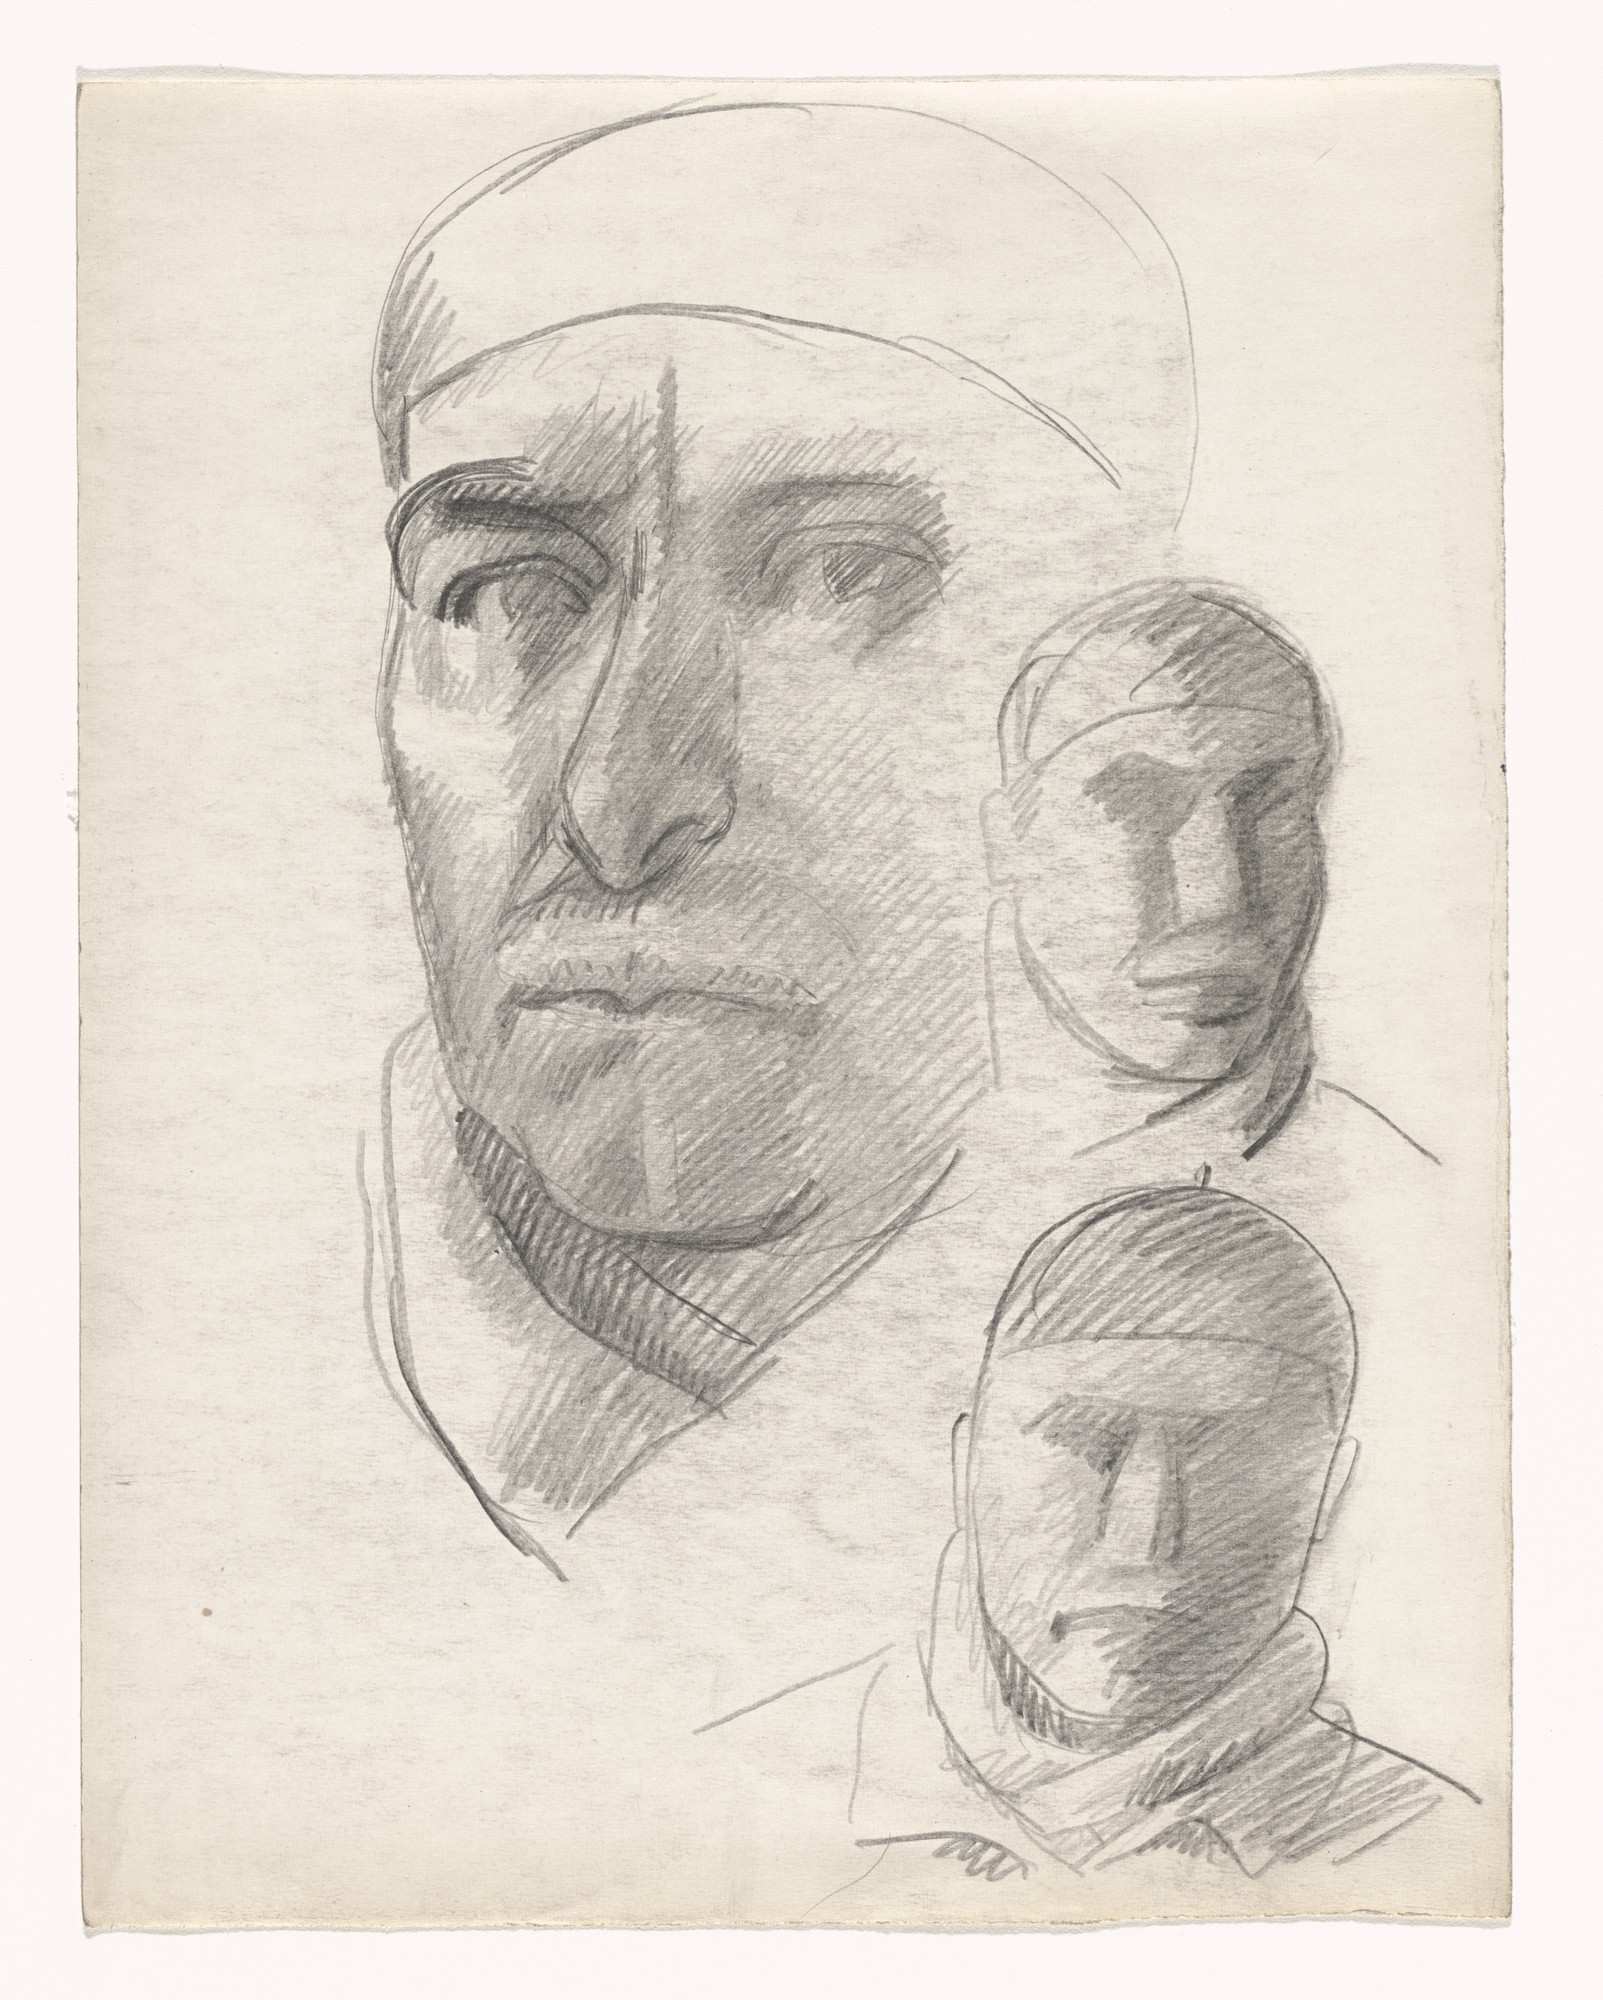 Julio González. Three Studies of Self-Portrait. (1938-40)